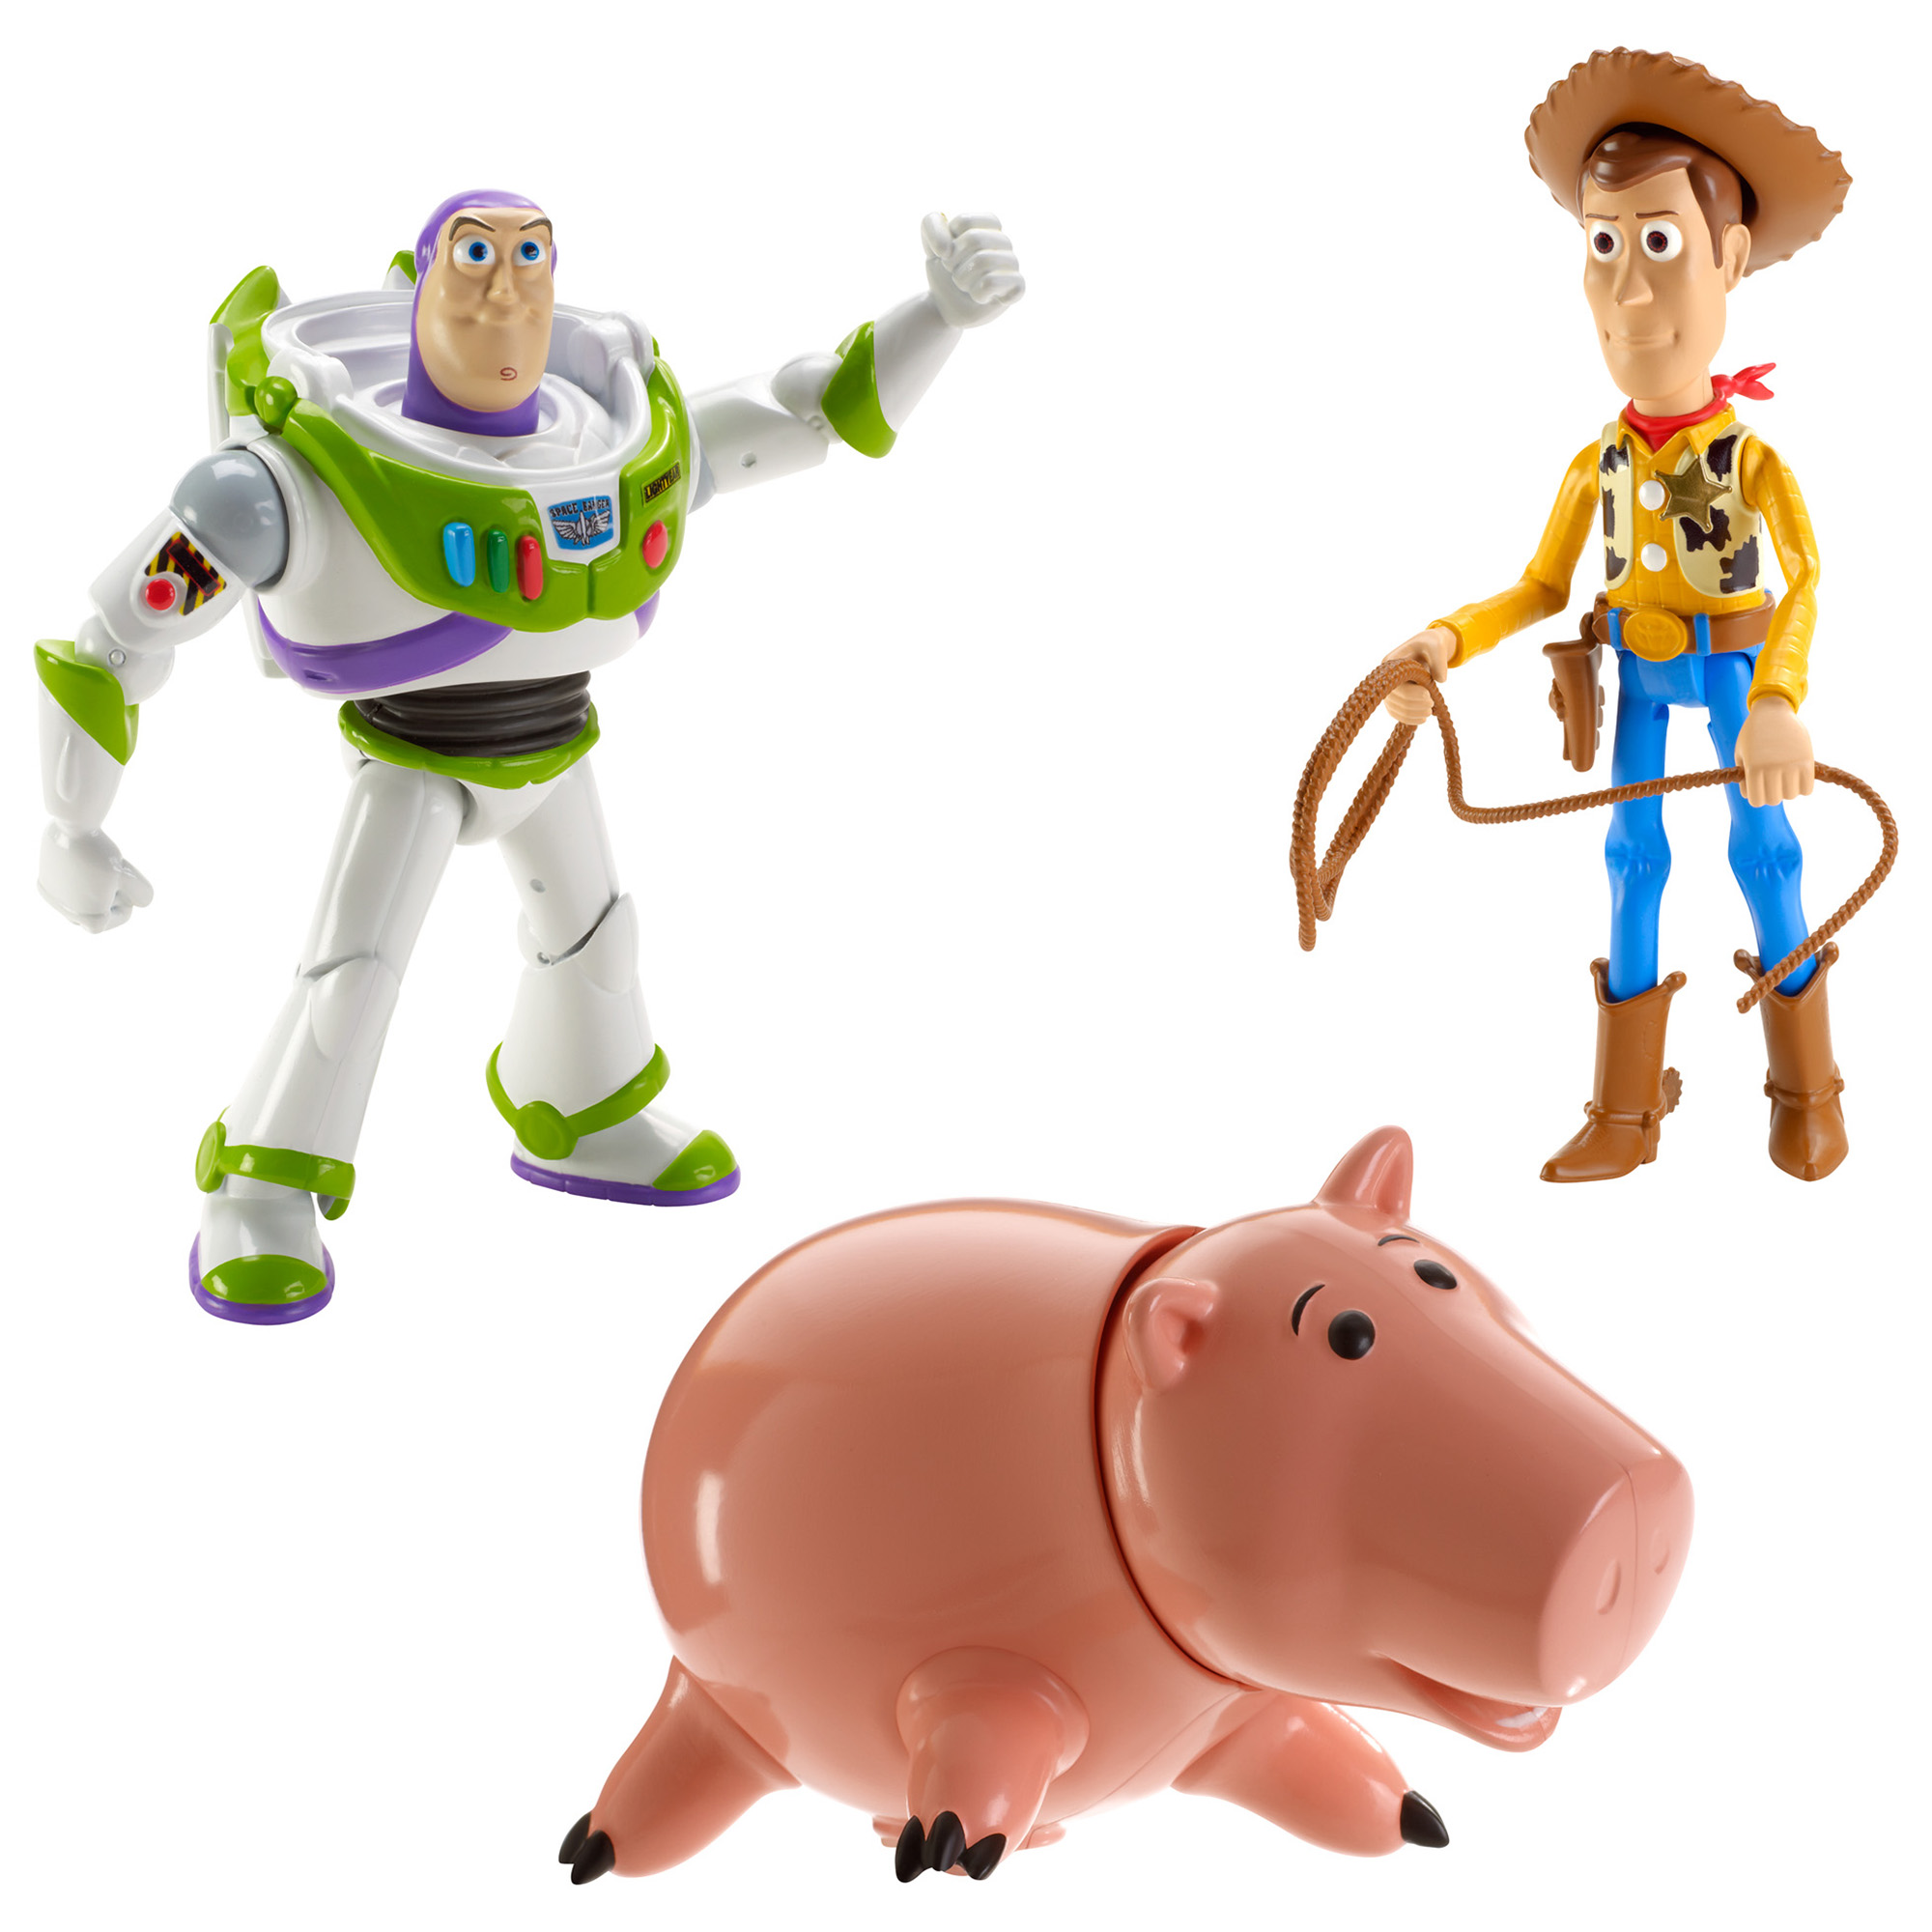 Toy Story Figures : Toy story figure shop for cheap toys and save online